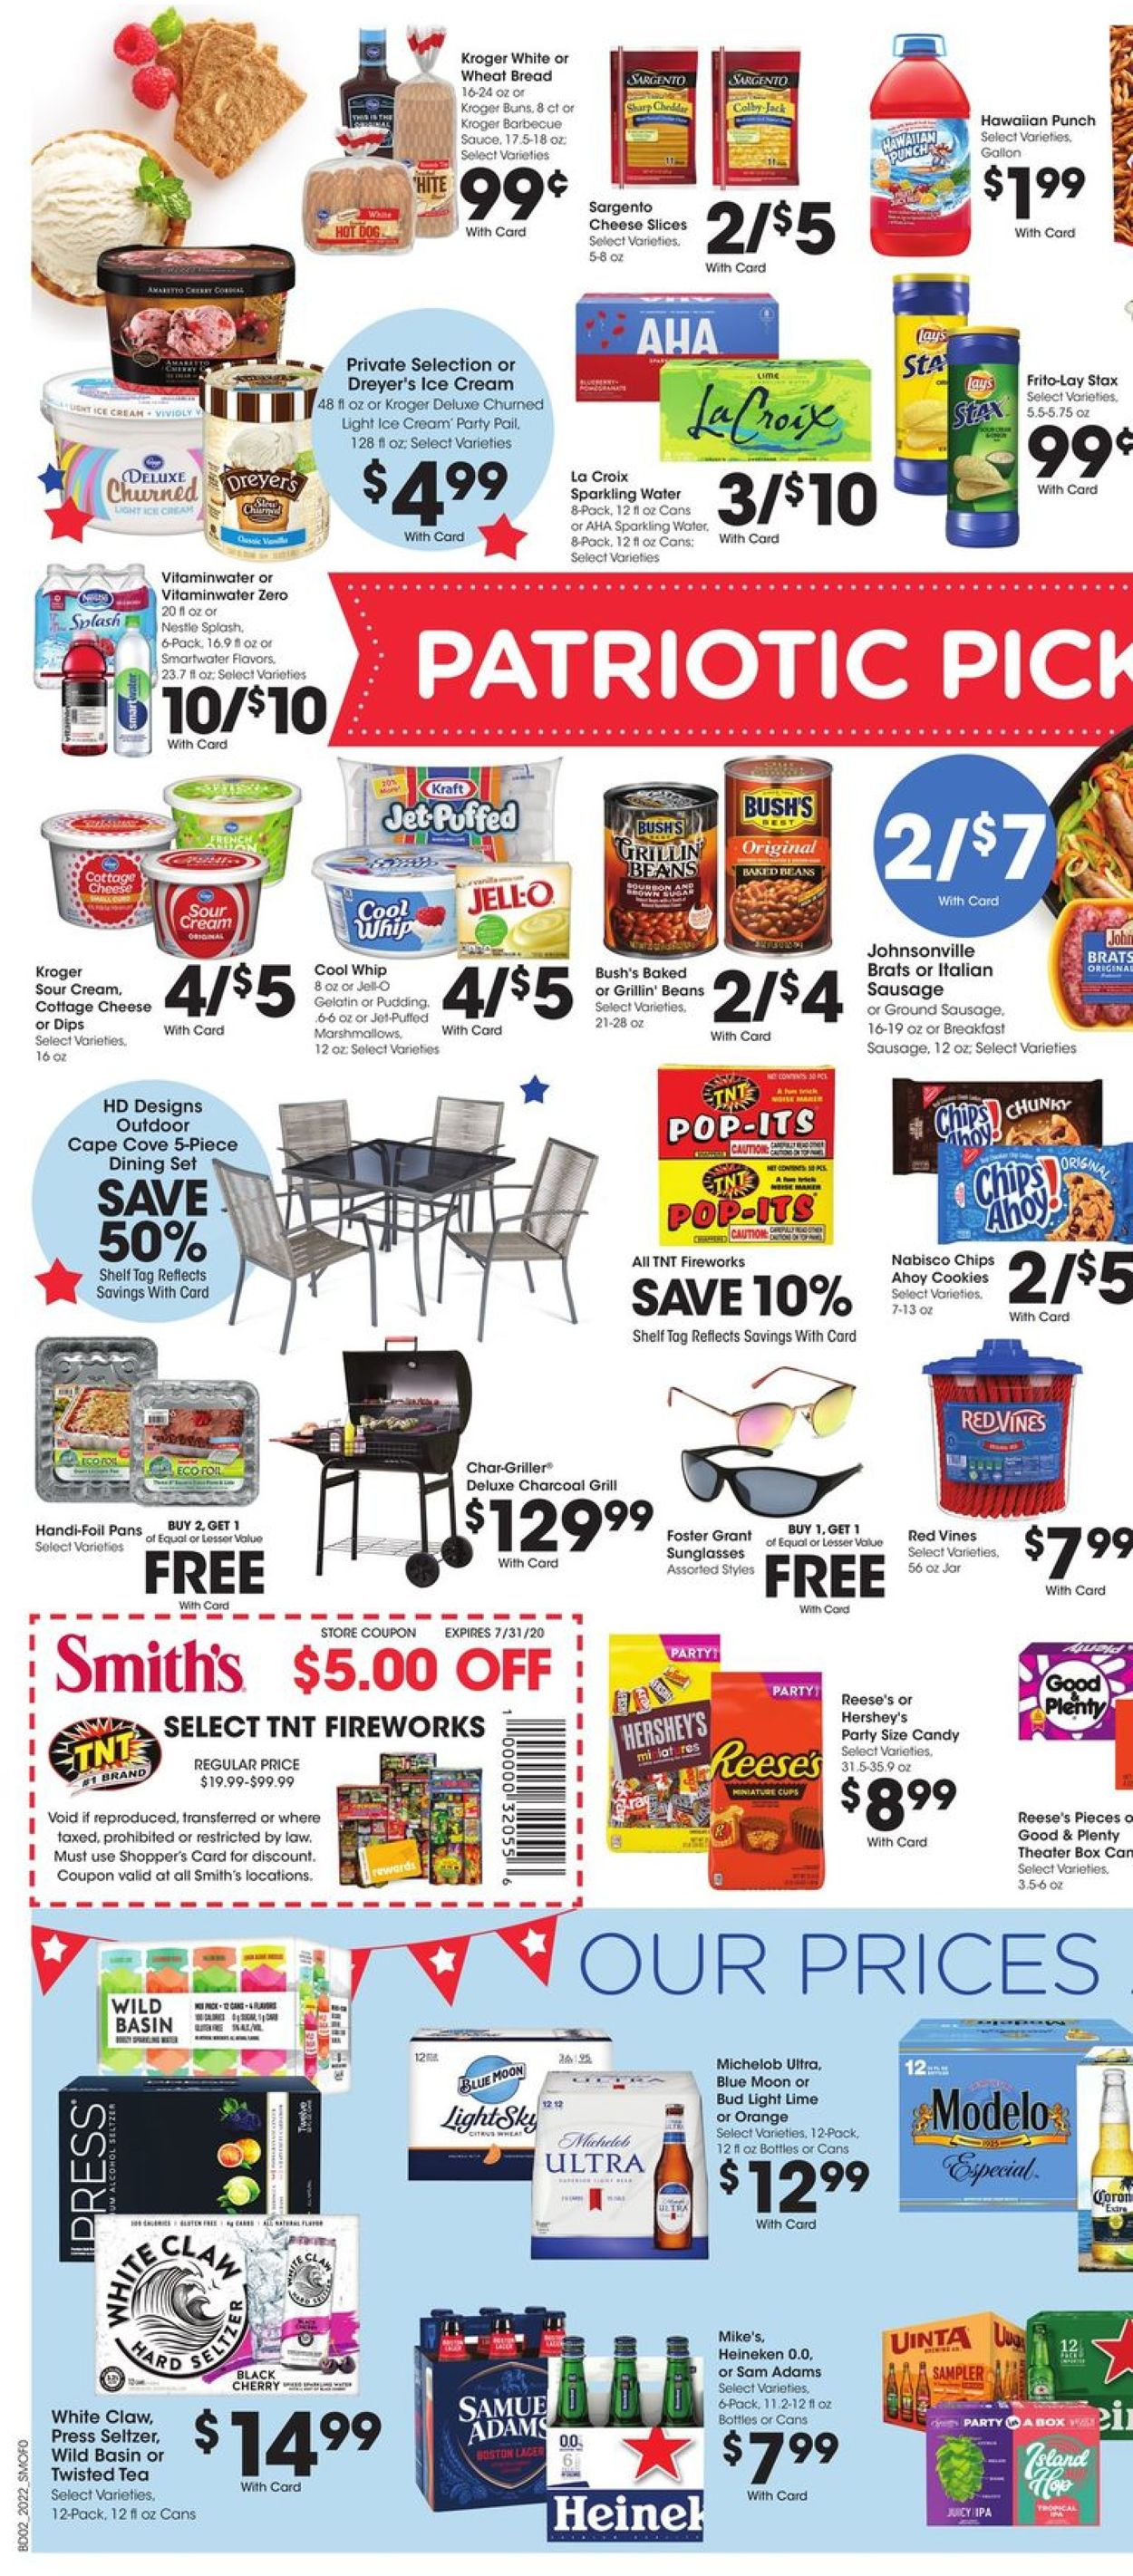 Smith's Weekly Ad Circular - valid 07/01-07/07/2020 (Page 4)